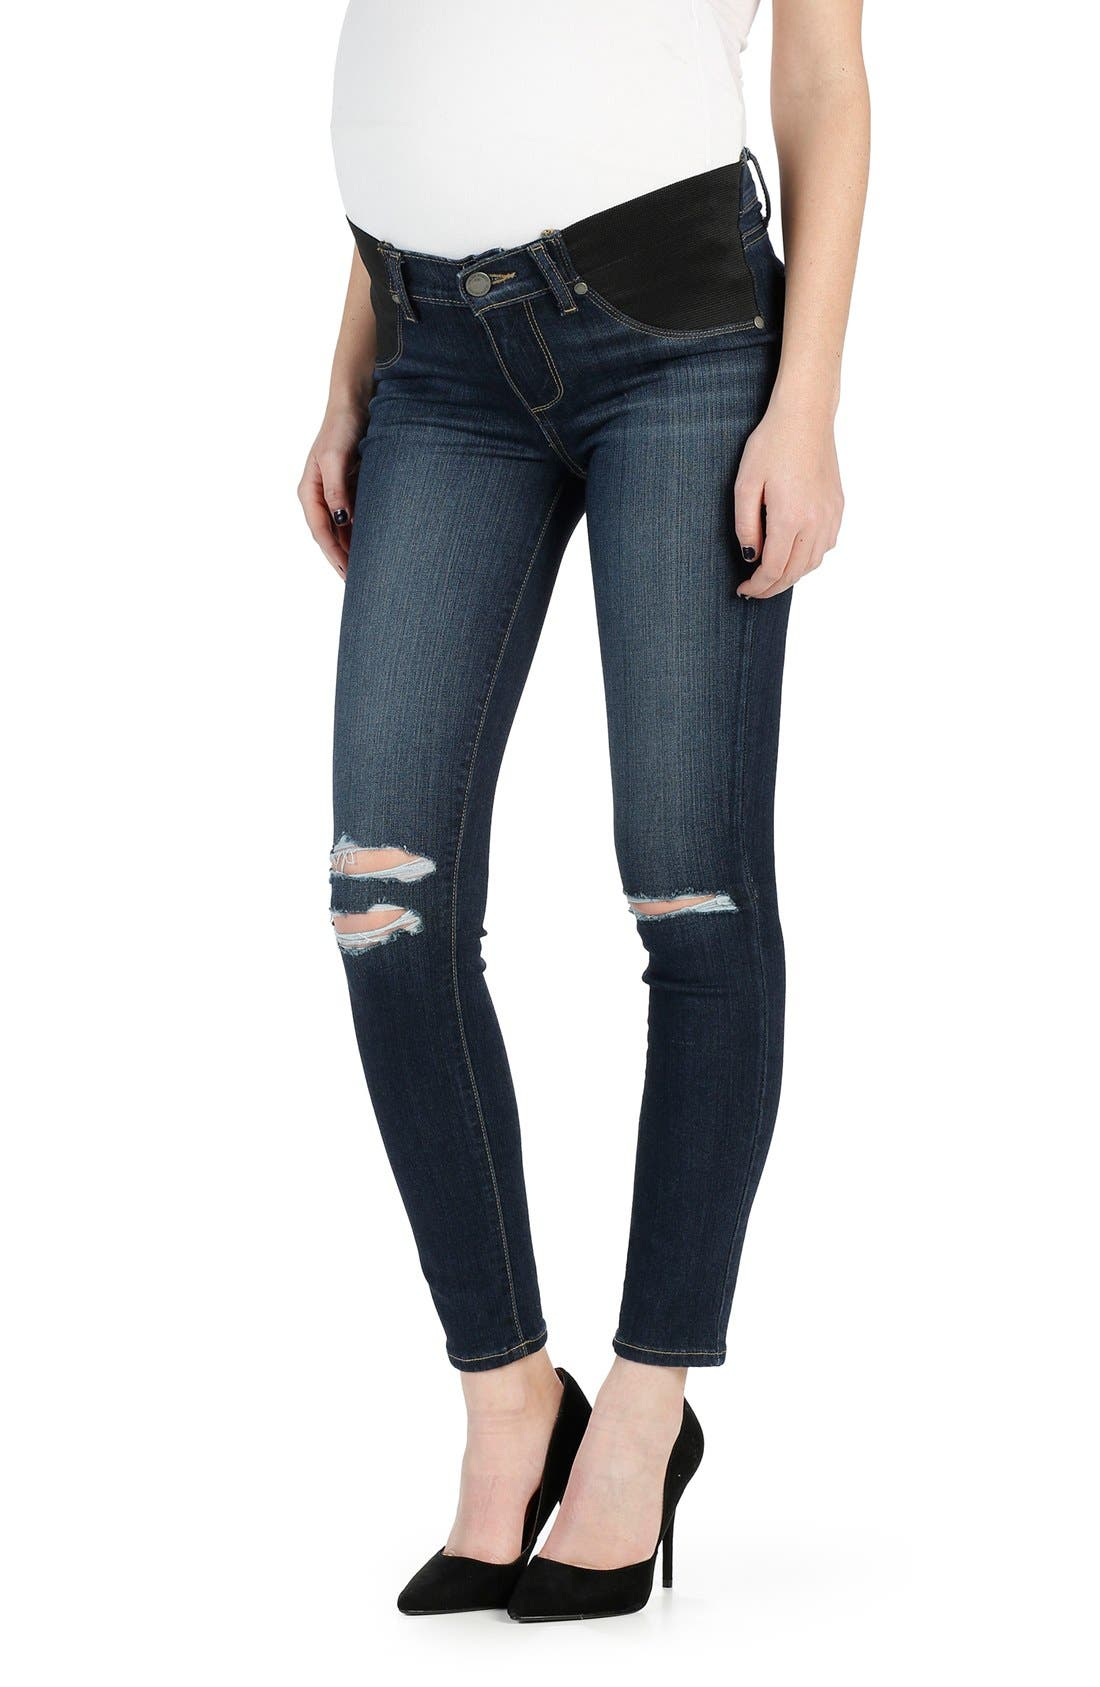 PAIGE Transcend - Verdugo Ripped Ankle Ultra Skinny Maternity Jeans (Nia Destructed)